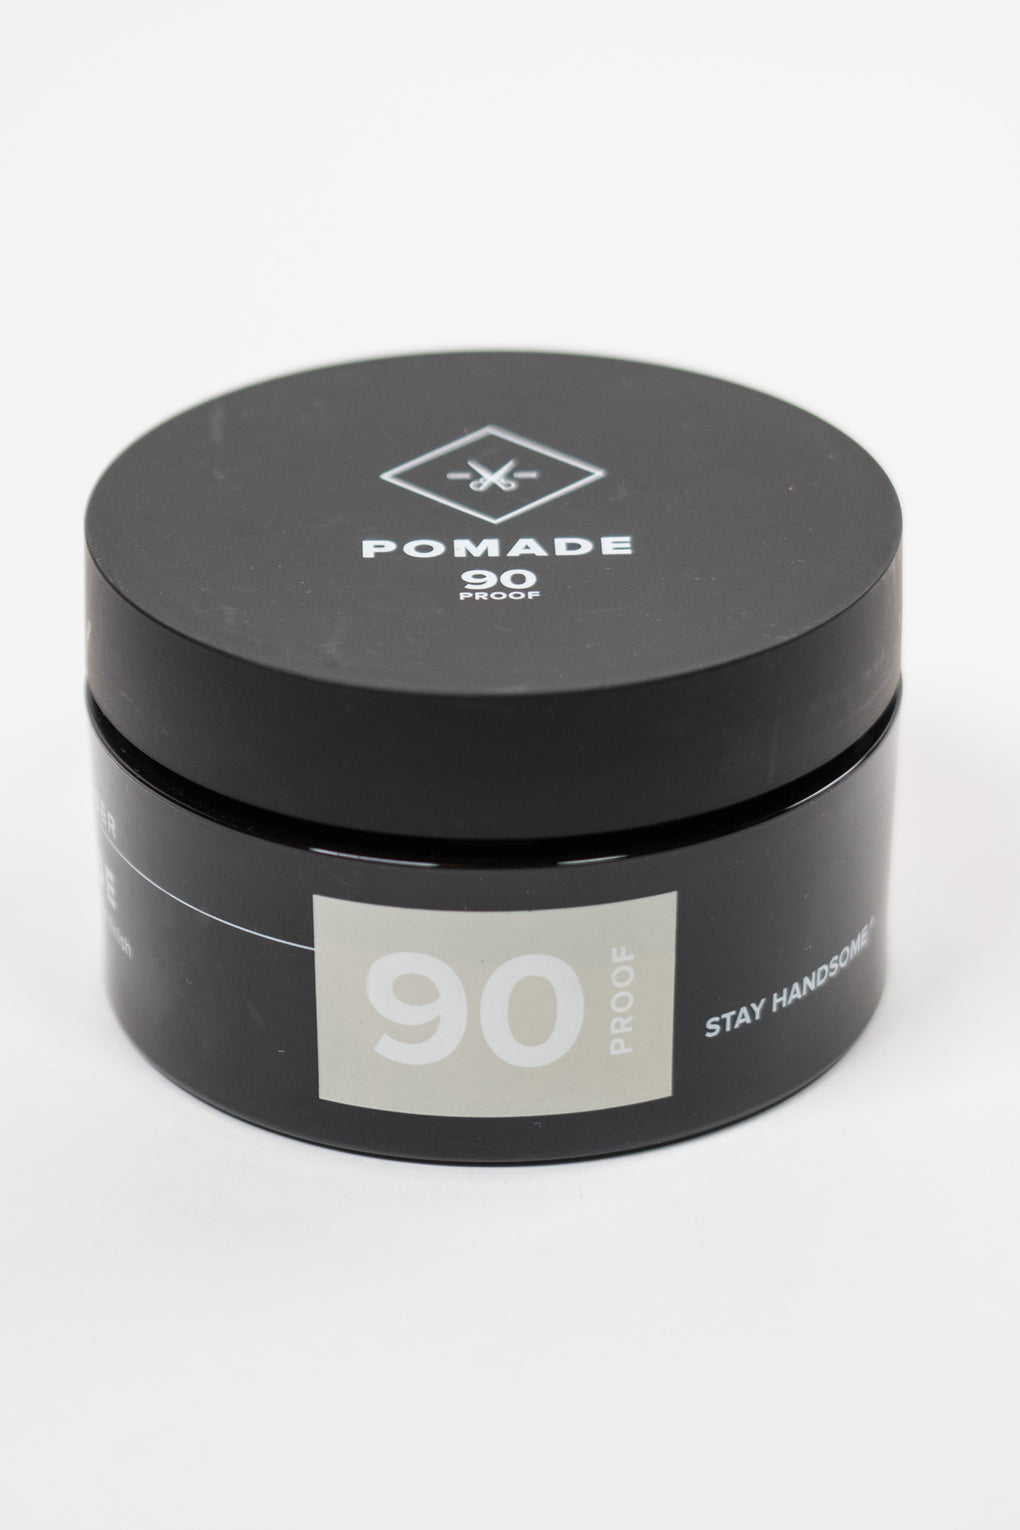 Blind Barber 90 Proof Pomade at Consigliere